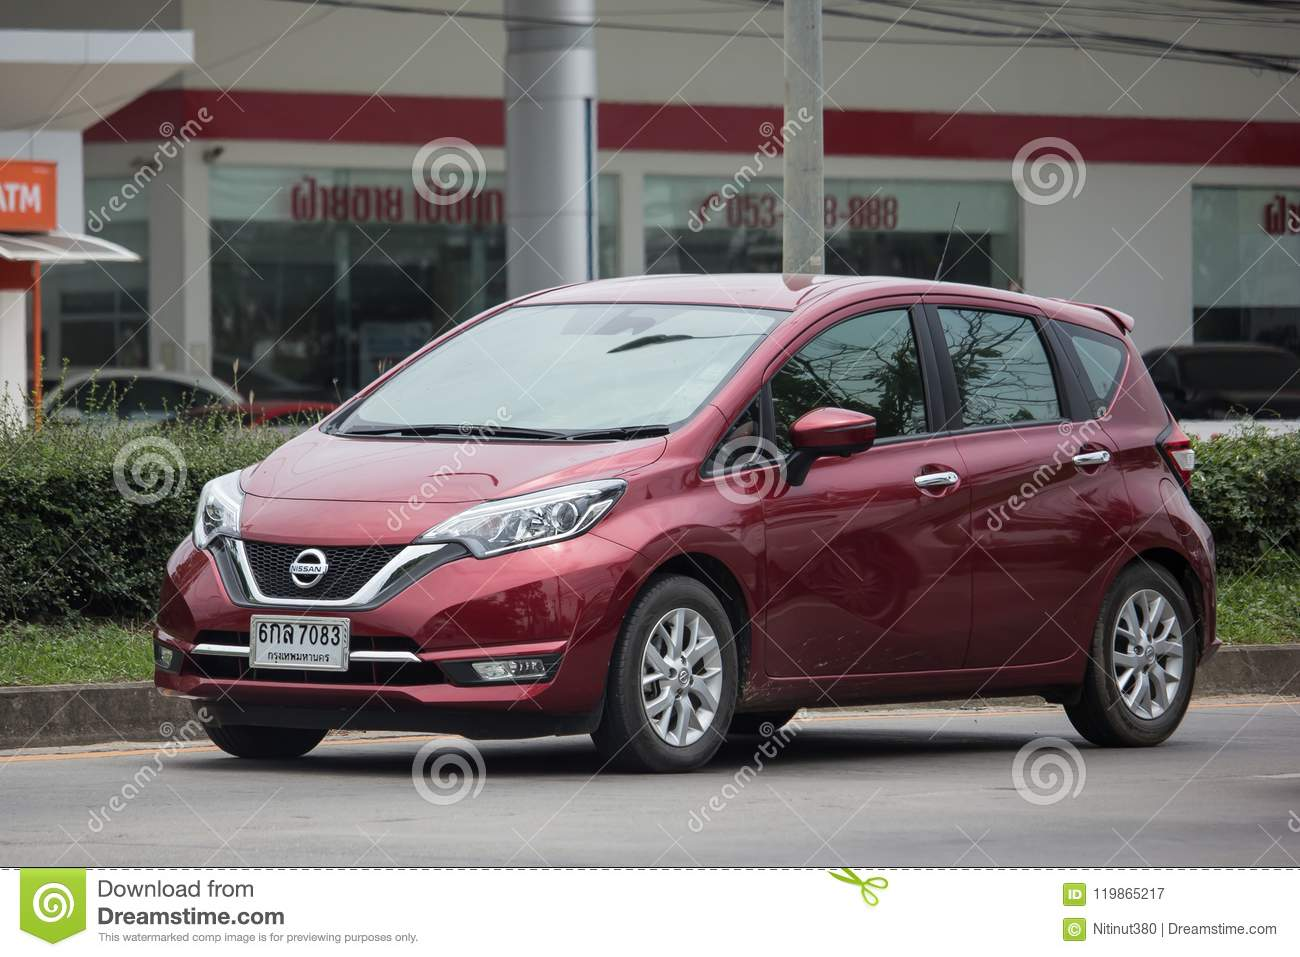 new eco car nissan note. editorial photography. image of note